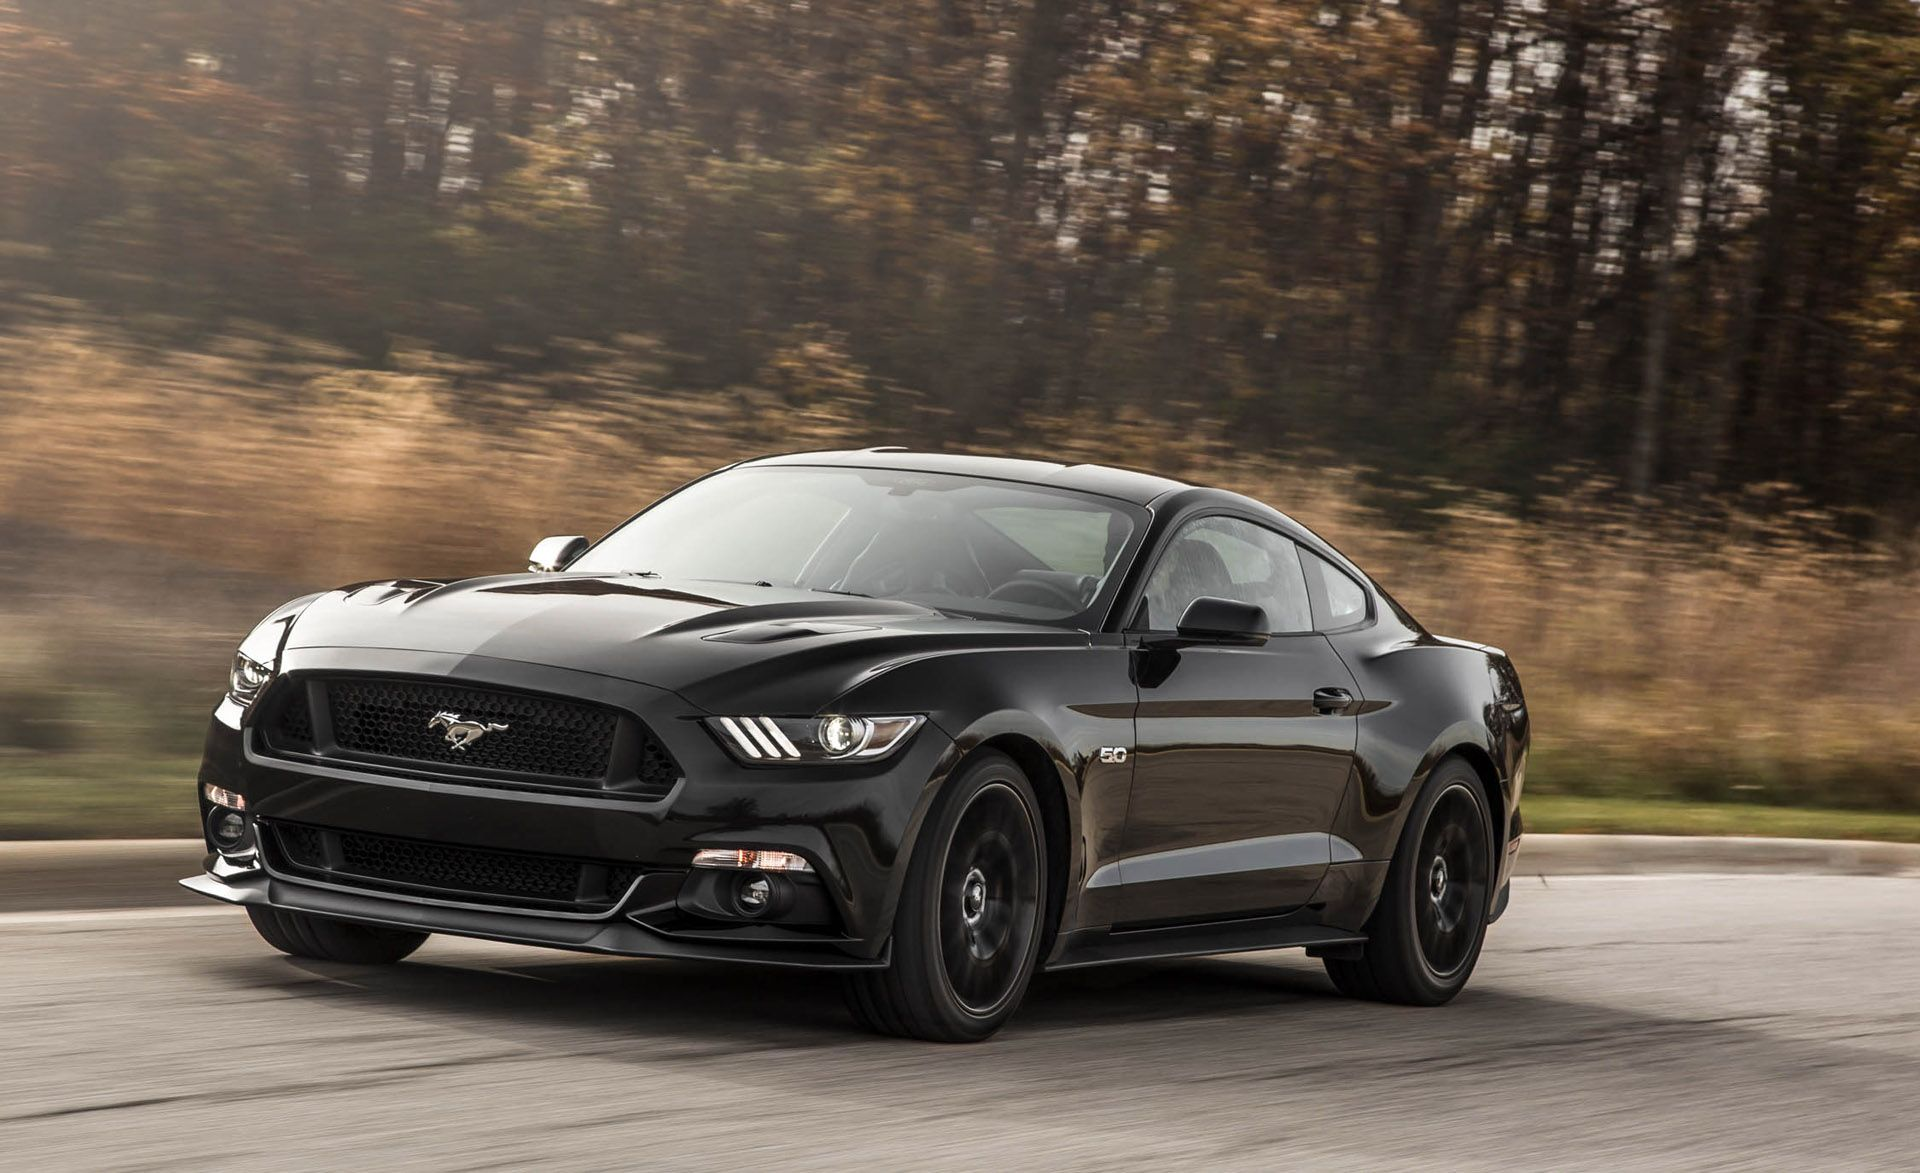 Free Download Black Ford Mustang Gt Wallpapers Mobile Black Ford